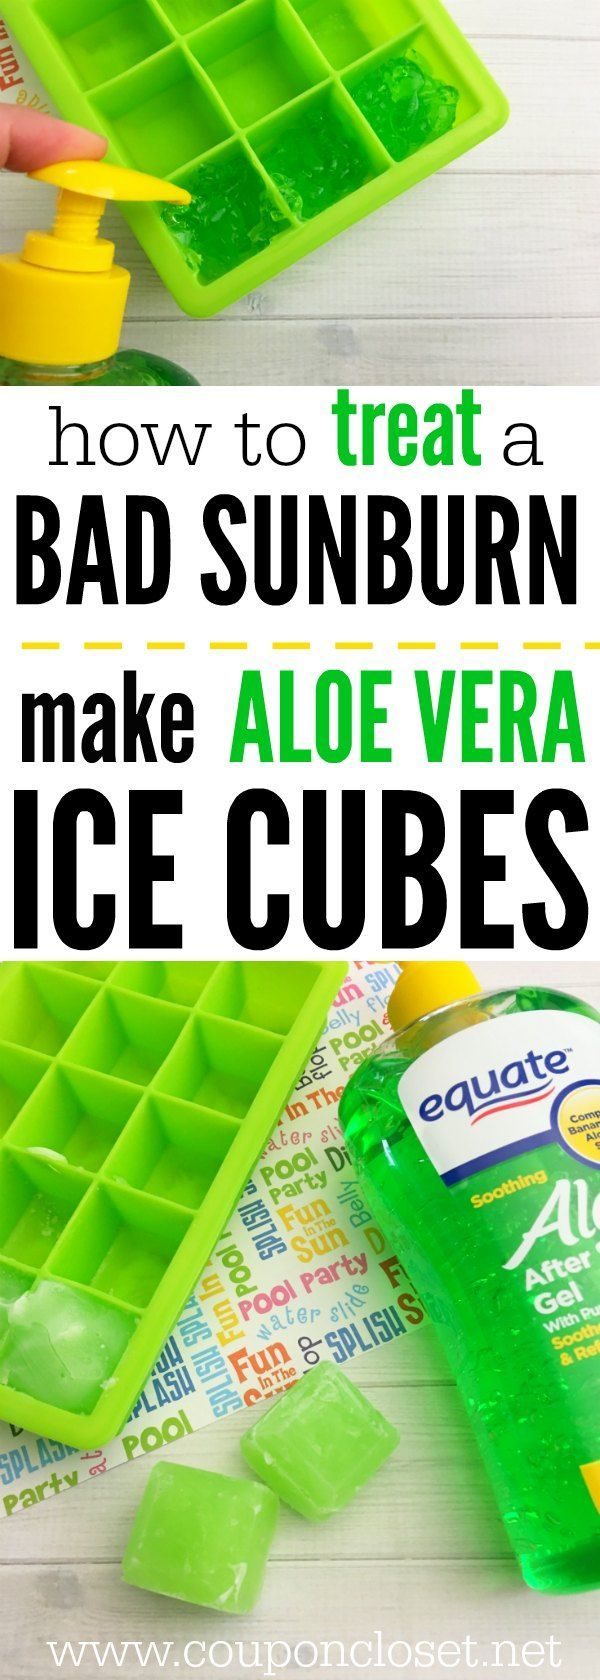 How to Treat a Bad Sunburn - Treating sunburns is easy with these easy to Make Aloe Vera Ice Cubes. They are so easy to make and the kids love them after a long day in the sun.